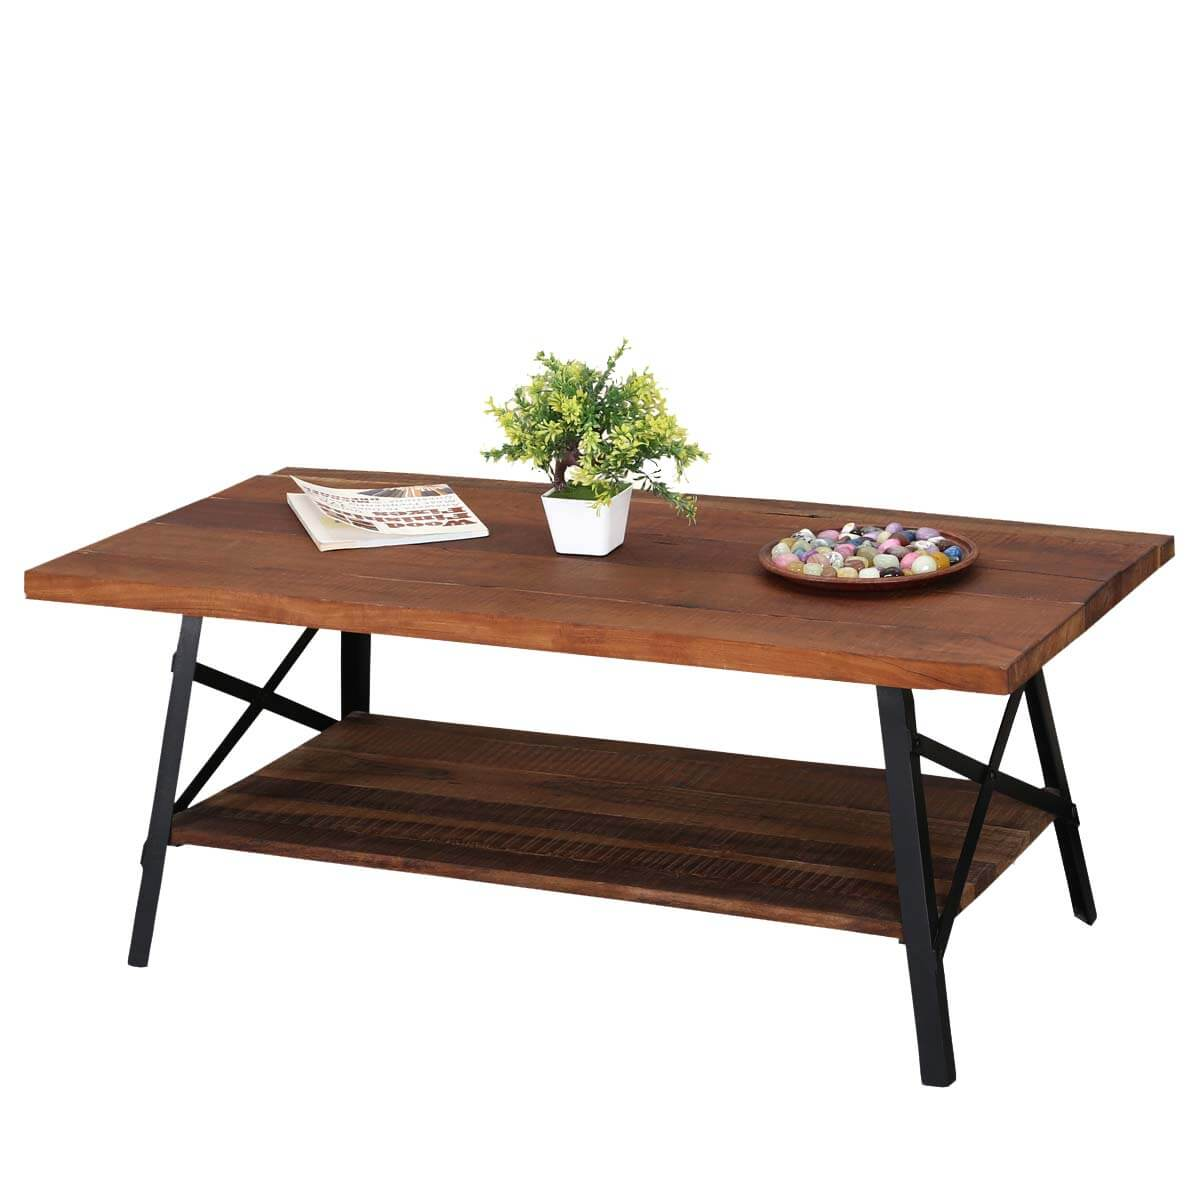 Awe Inspiring Industrial Simplicity Reclaimed Wood Iron 2 Tier Coffee Table Ocoug Best Dining Table And Chair Ideas Images Ocougorg